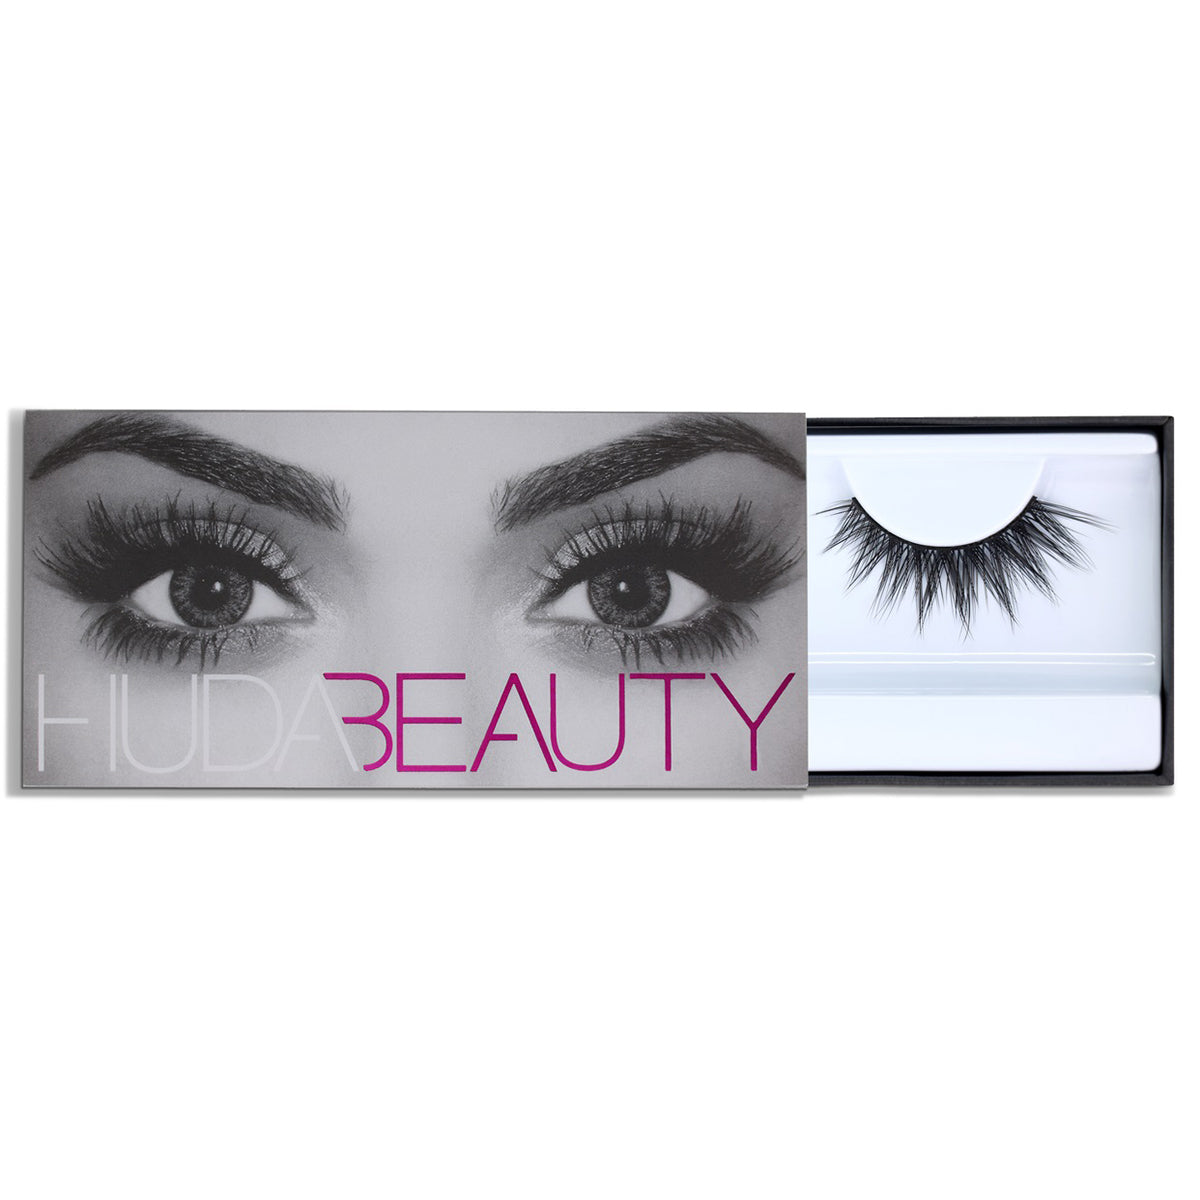 Huda Beauty CLASSIC LASH SAMANTHA #7